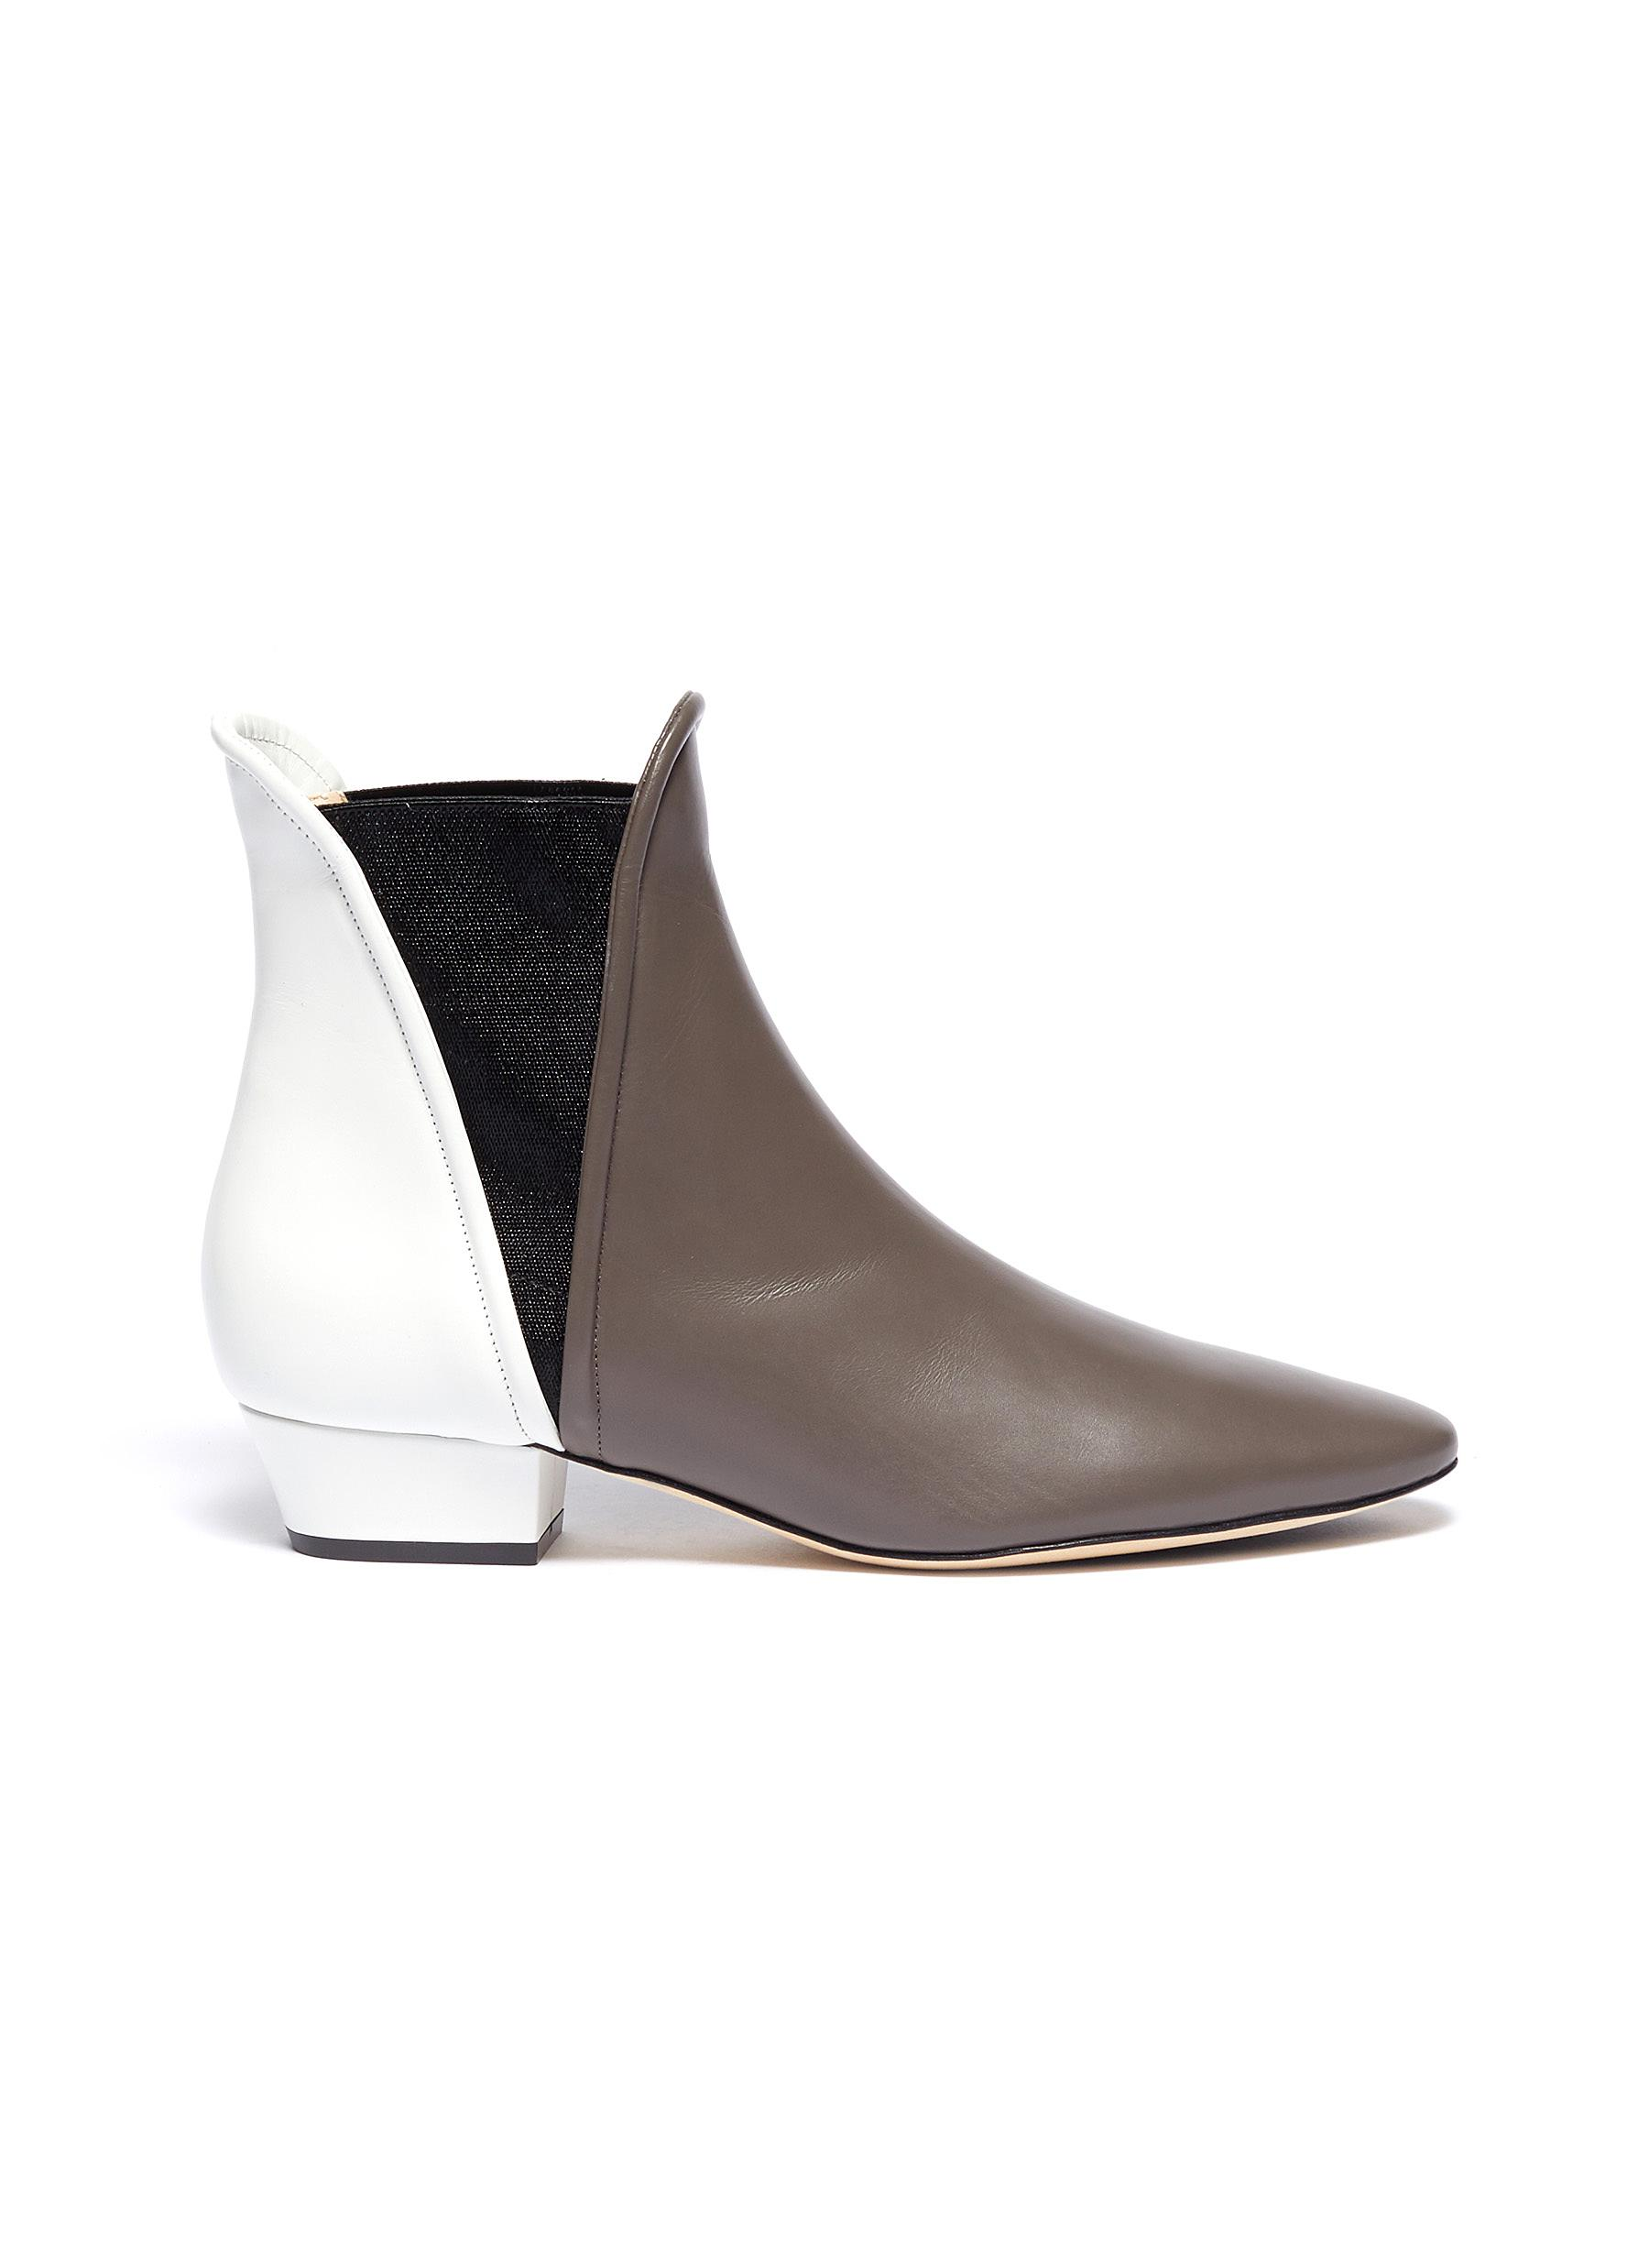 Bootie 45 colourblock leather ankle boots by Rodo